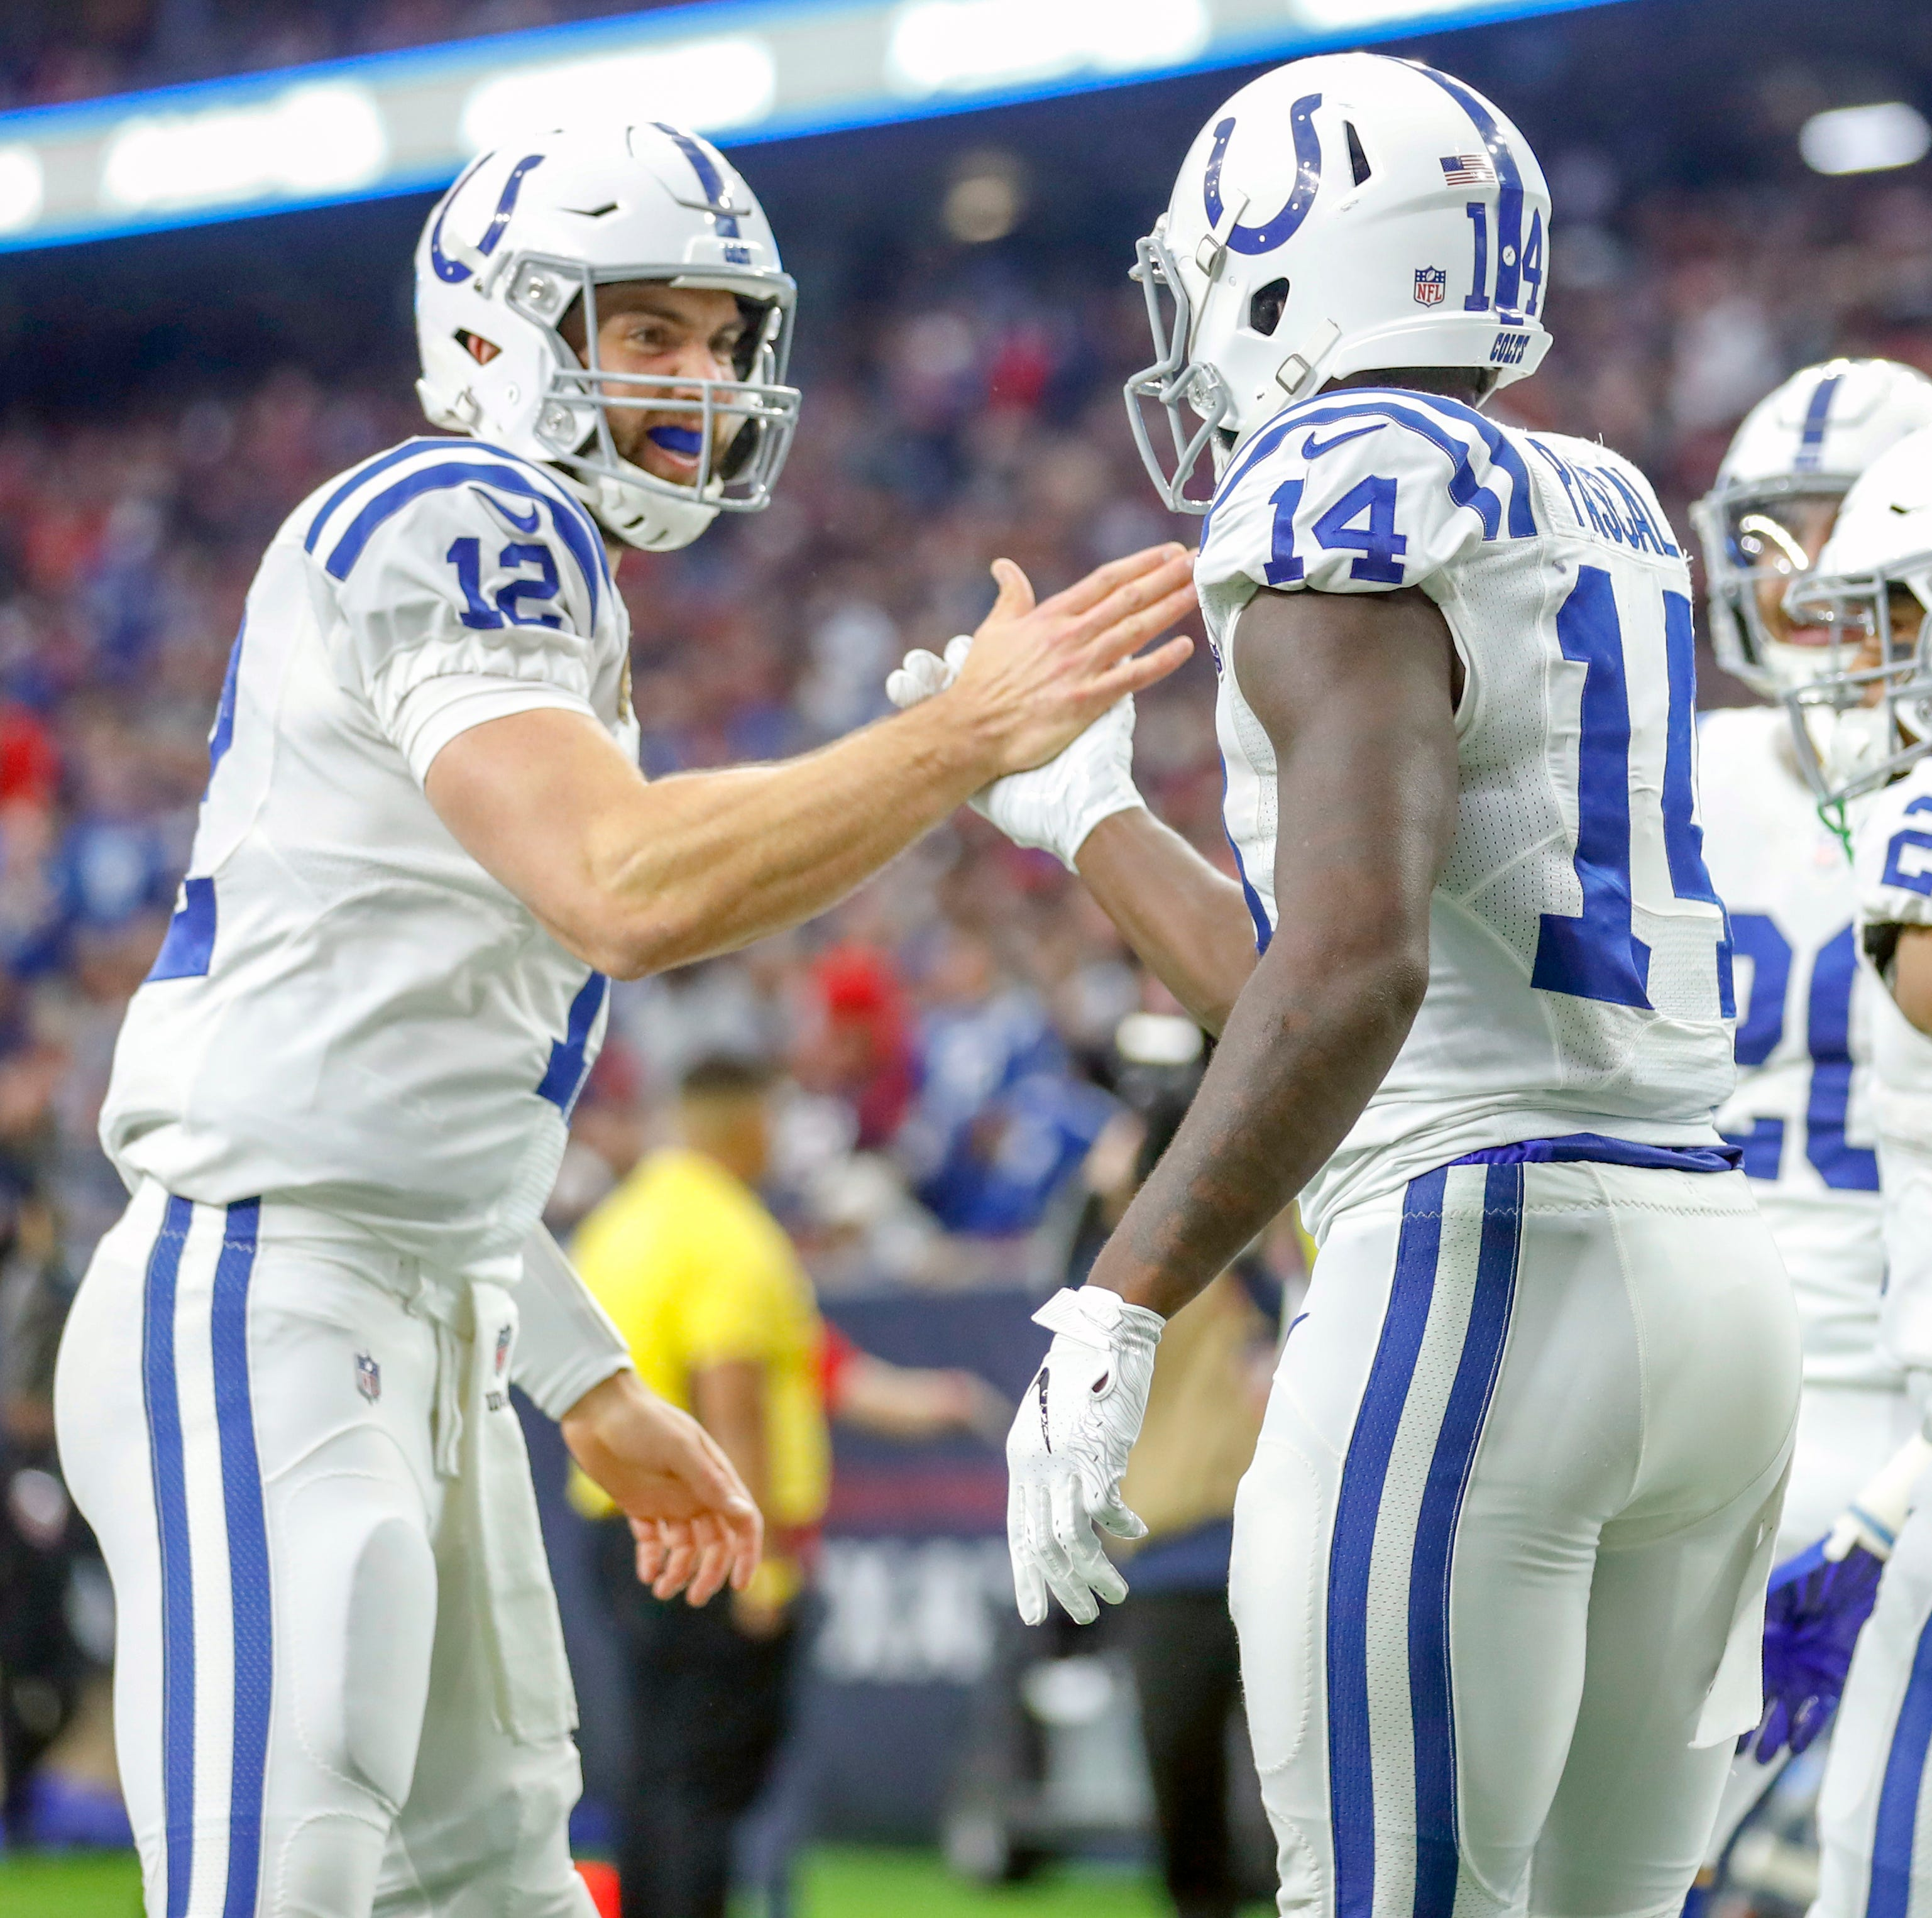 Doyel: Andrew Luck is all the way back, keeps Colts in playoff picture